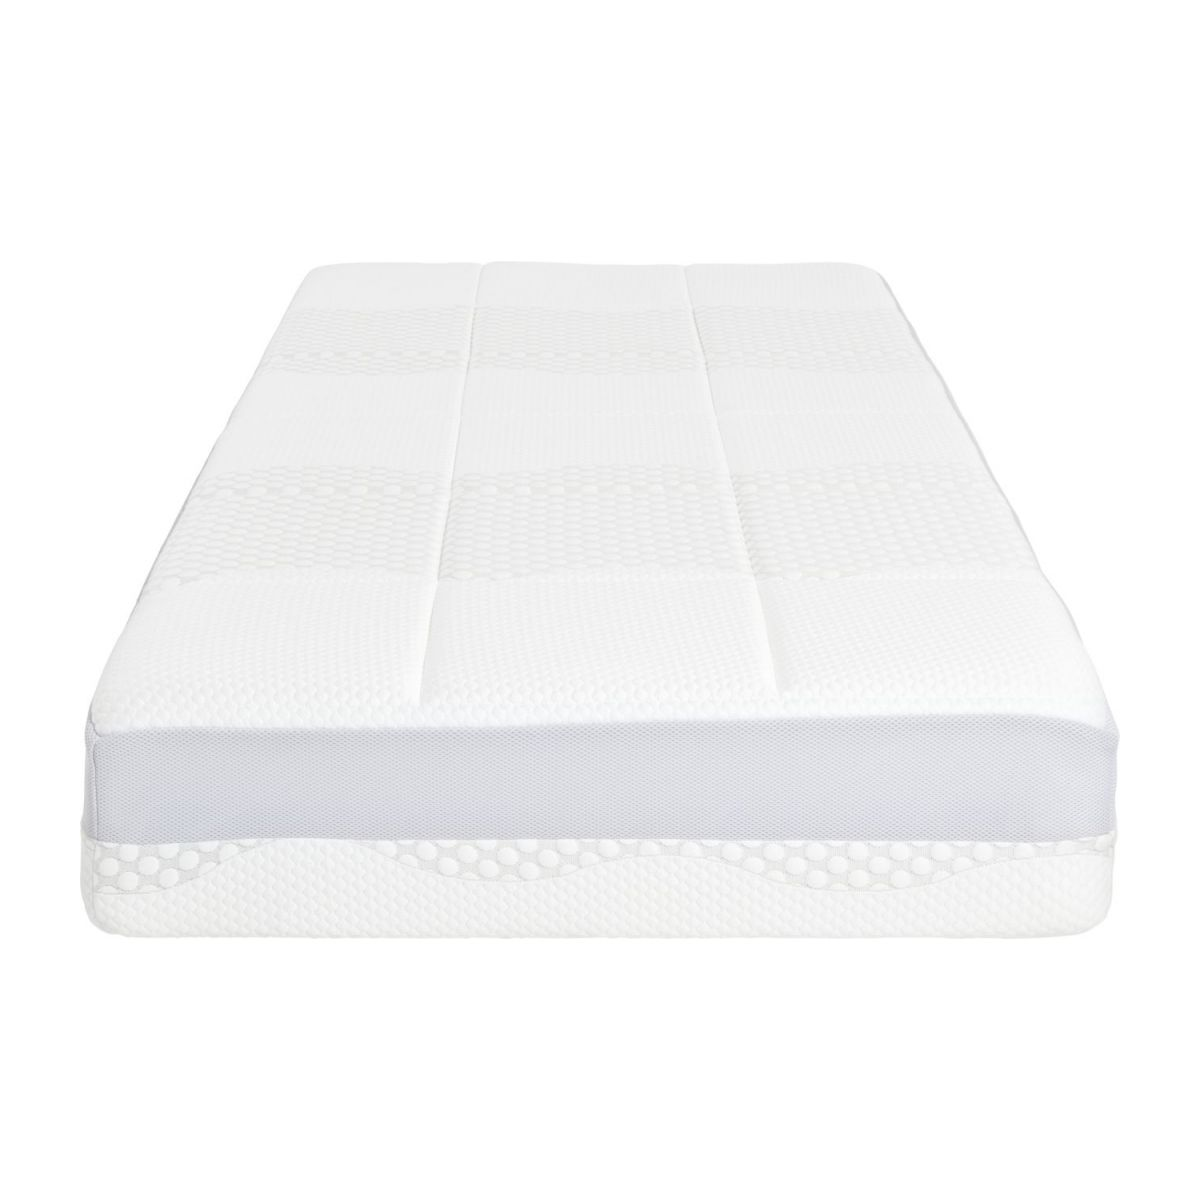 Foam mattress, width 24 cm, 90x200cm - firm support n°2